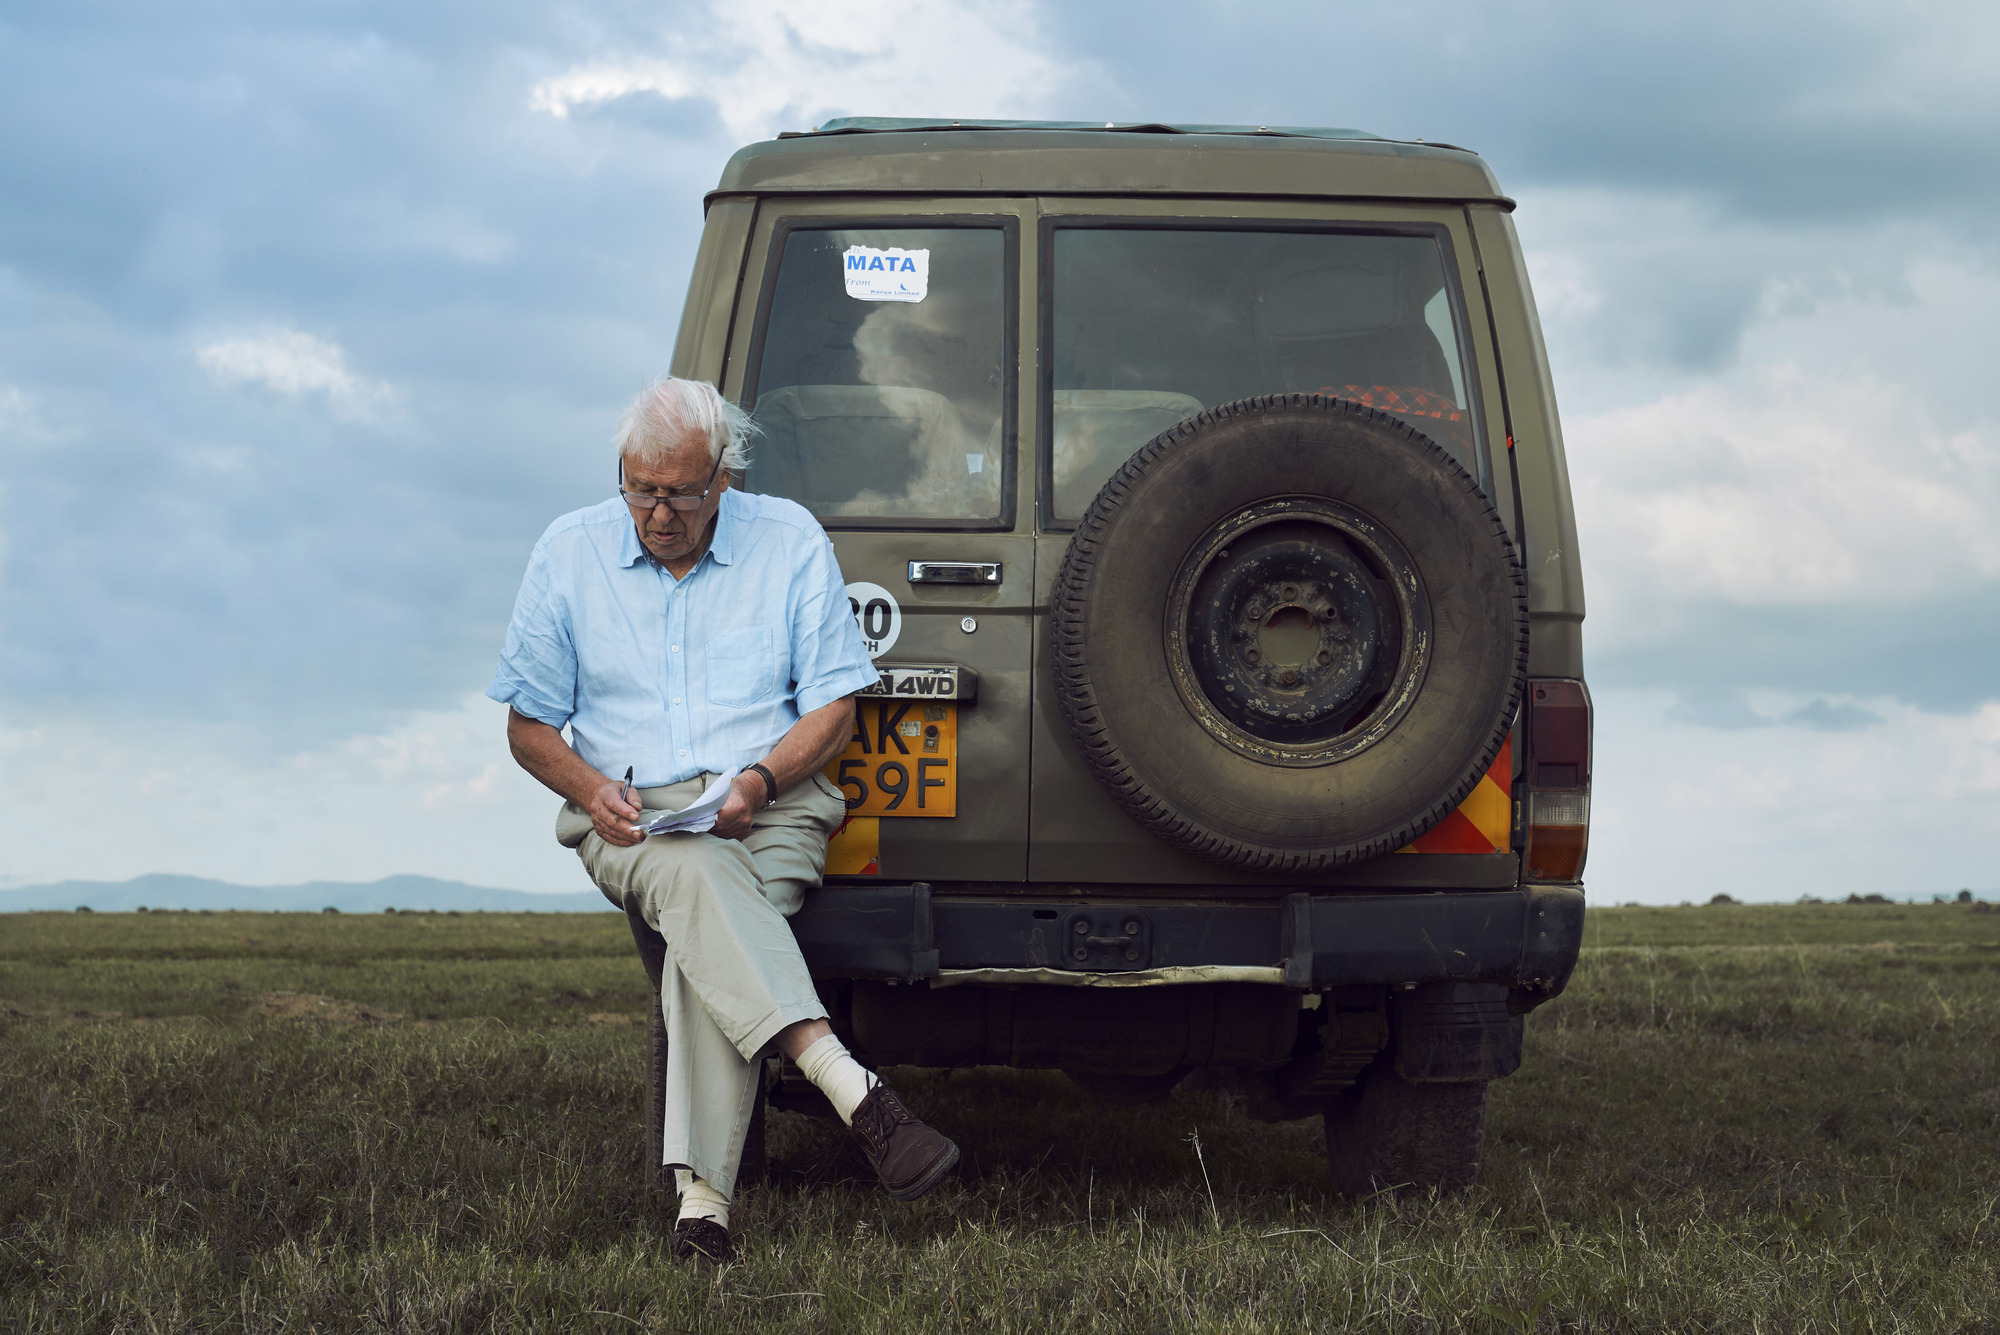 Sir David Attenborough on location while filming Seven Worlds, One Planet